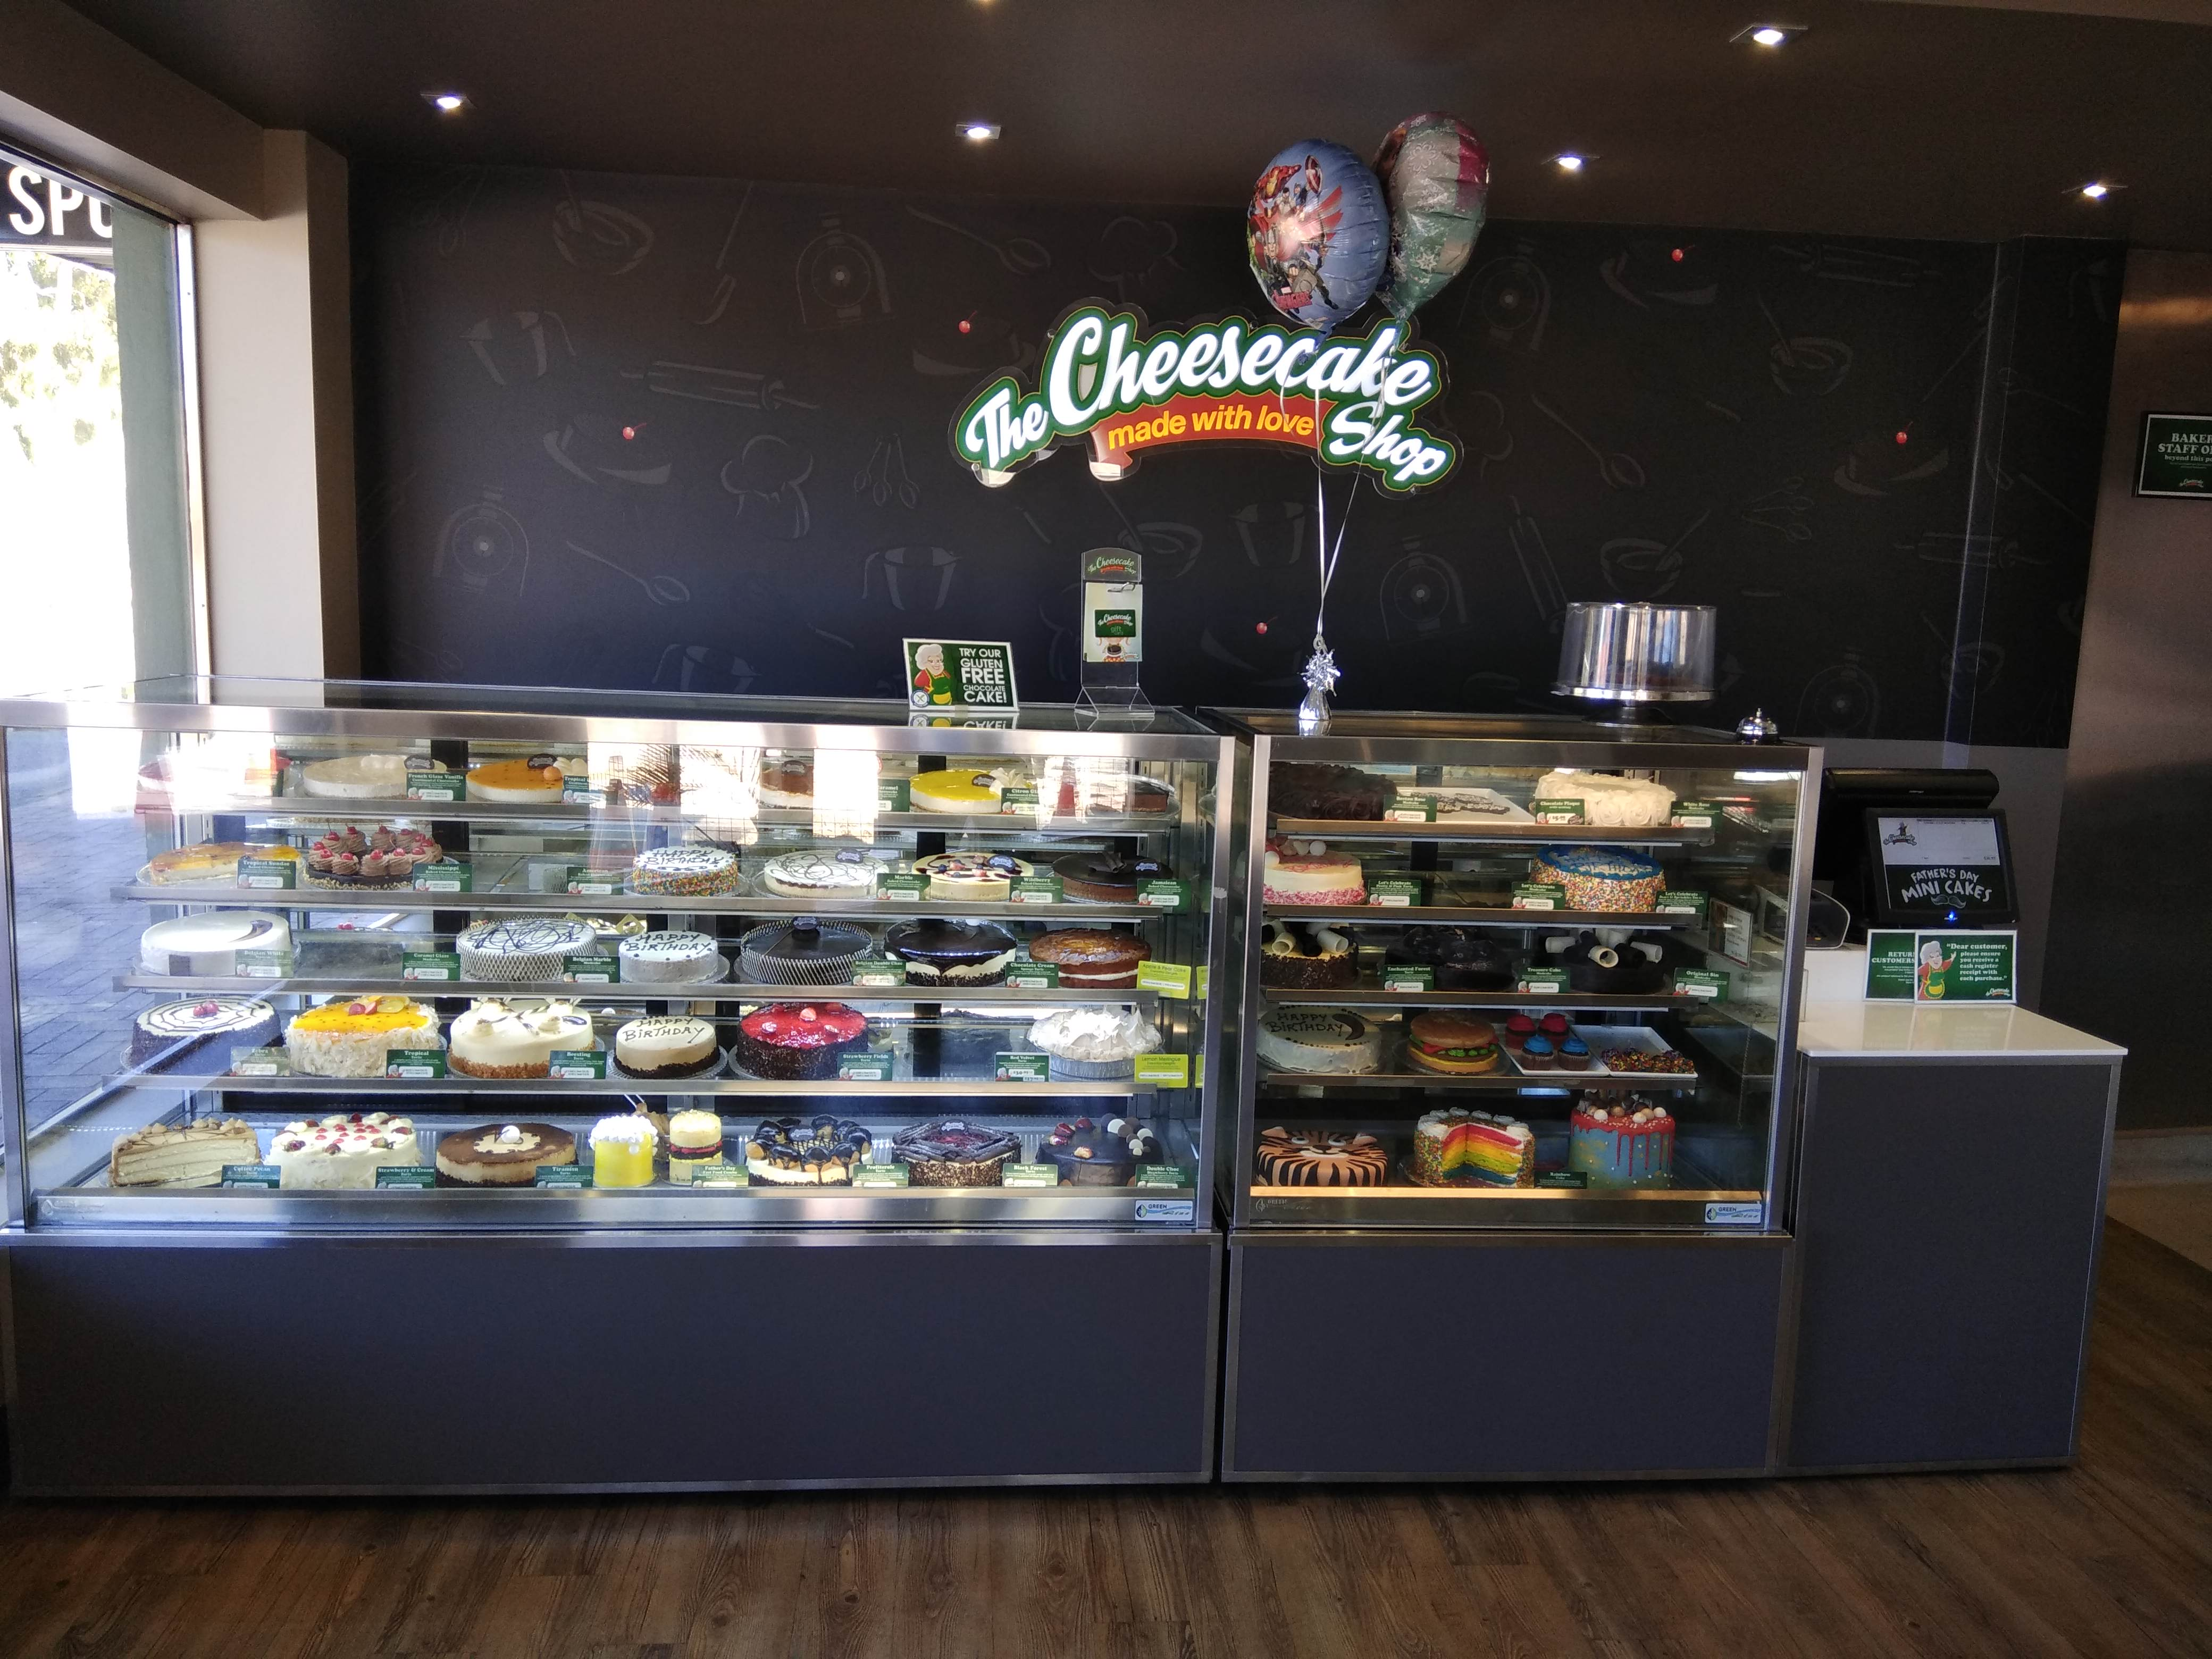 The Cheesecake Shop- Price Reduced Great Location